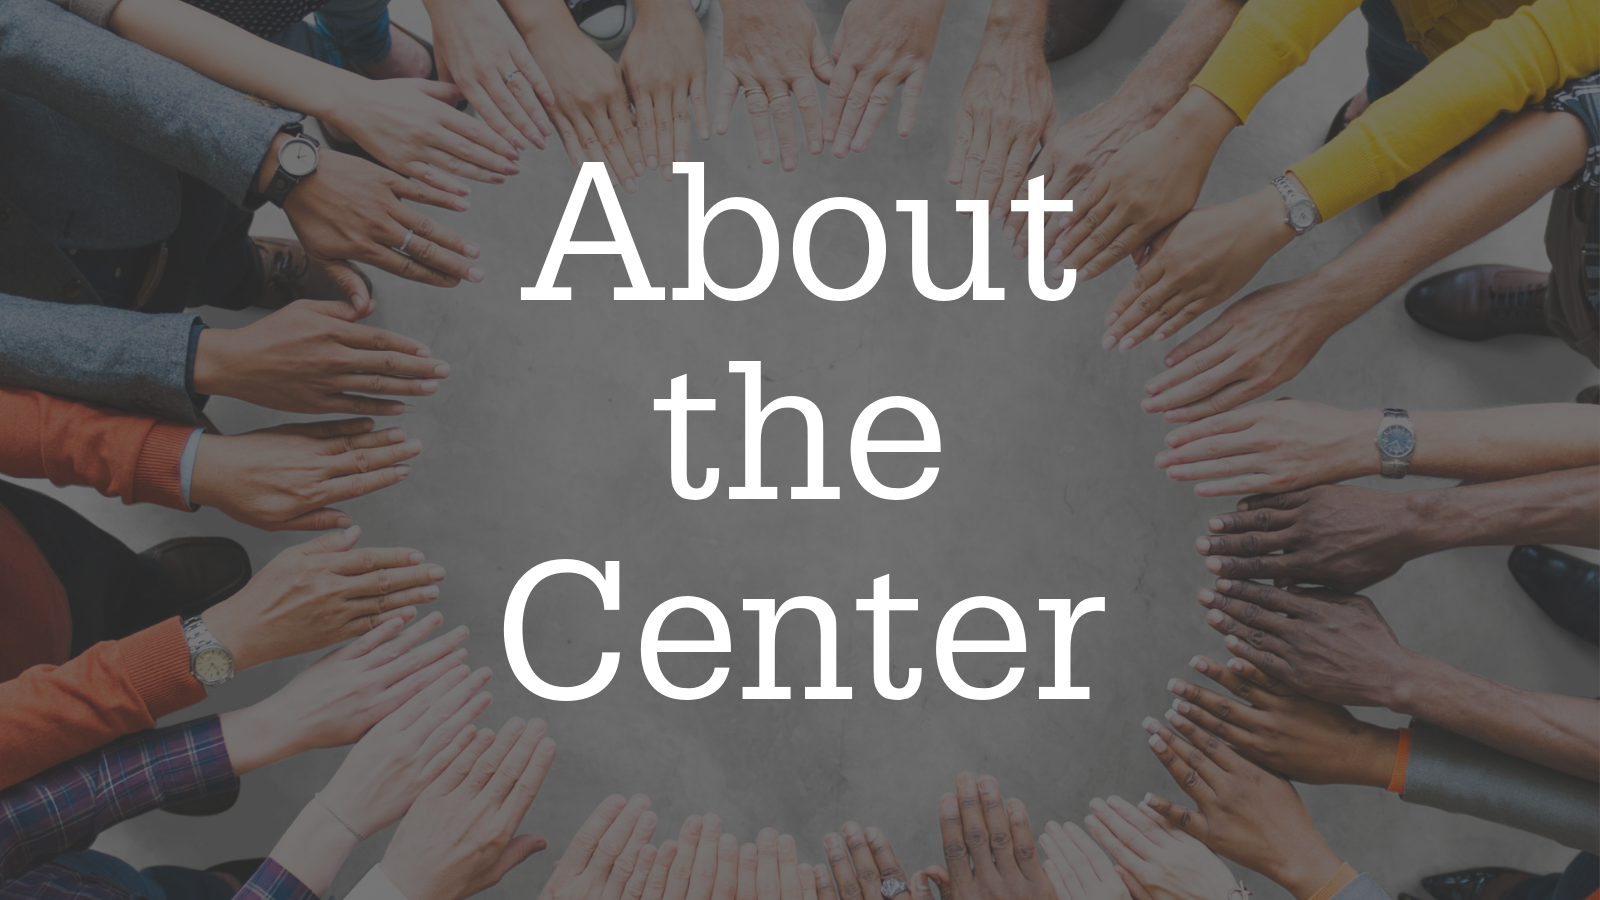 About the Center in the middle of hands